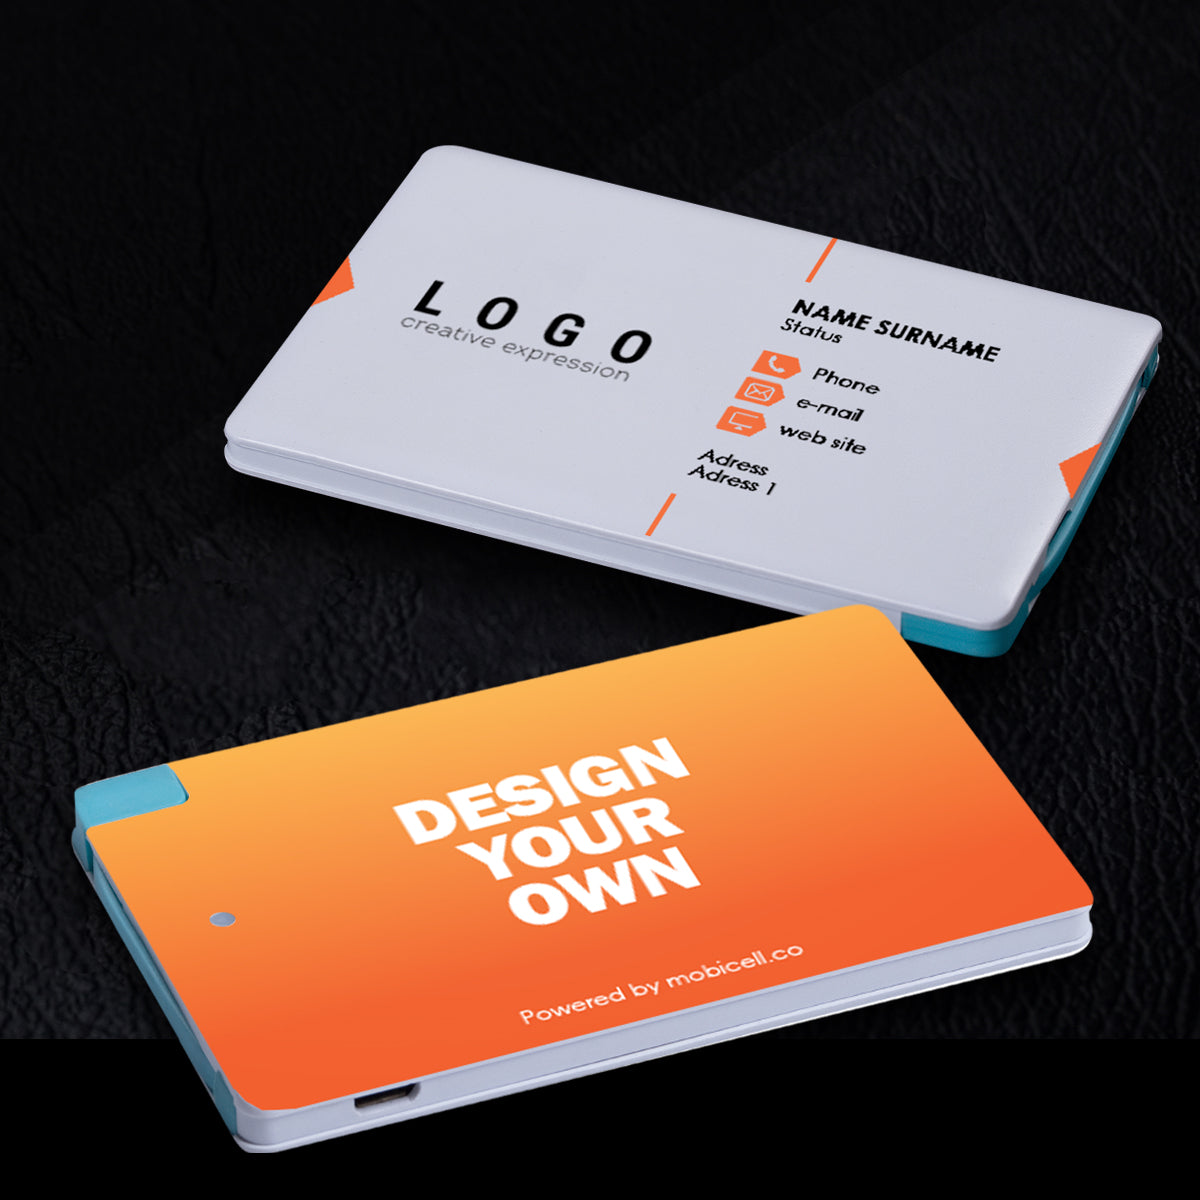 Design my own logo business cards awesome graphic library ultra thin business card power bank charger white 2500 mah rh mobicell co design my own business cards free design my own business cards software colourmoves